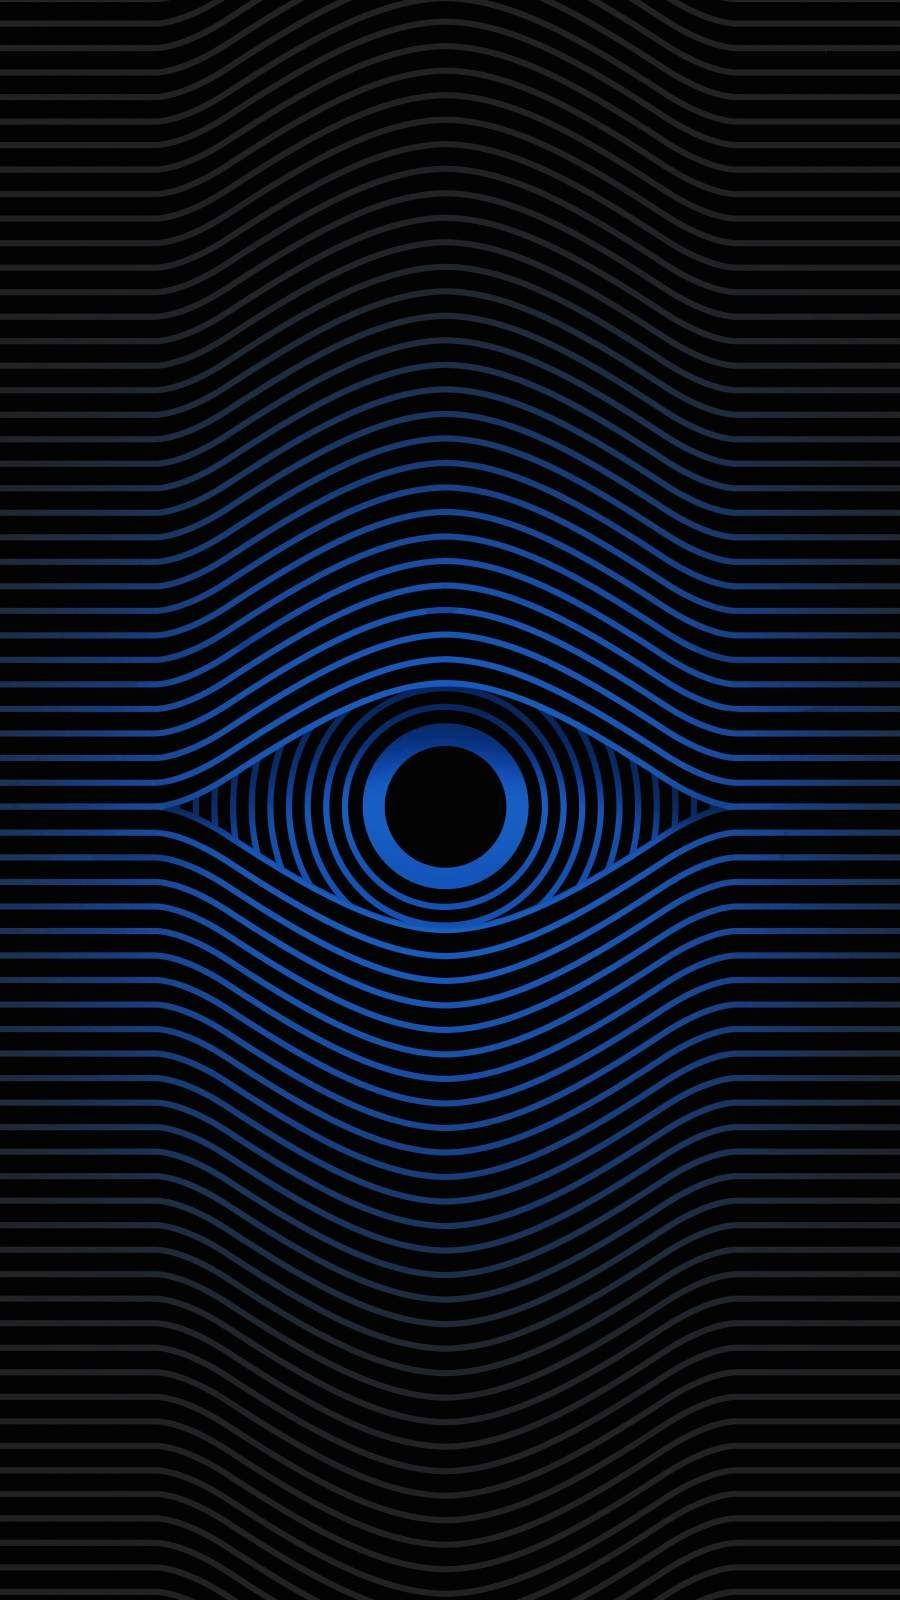 List Of The Great Third Eye Iphone Wallpaper Mobile Hd Wallpapers Iphone Homescreen Wallpaper Iphone Wallpaper Iphone X Cool Wallpapers For Phones